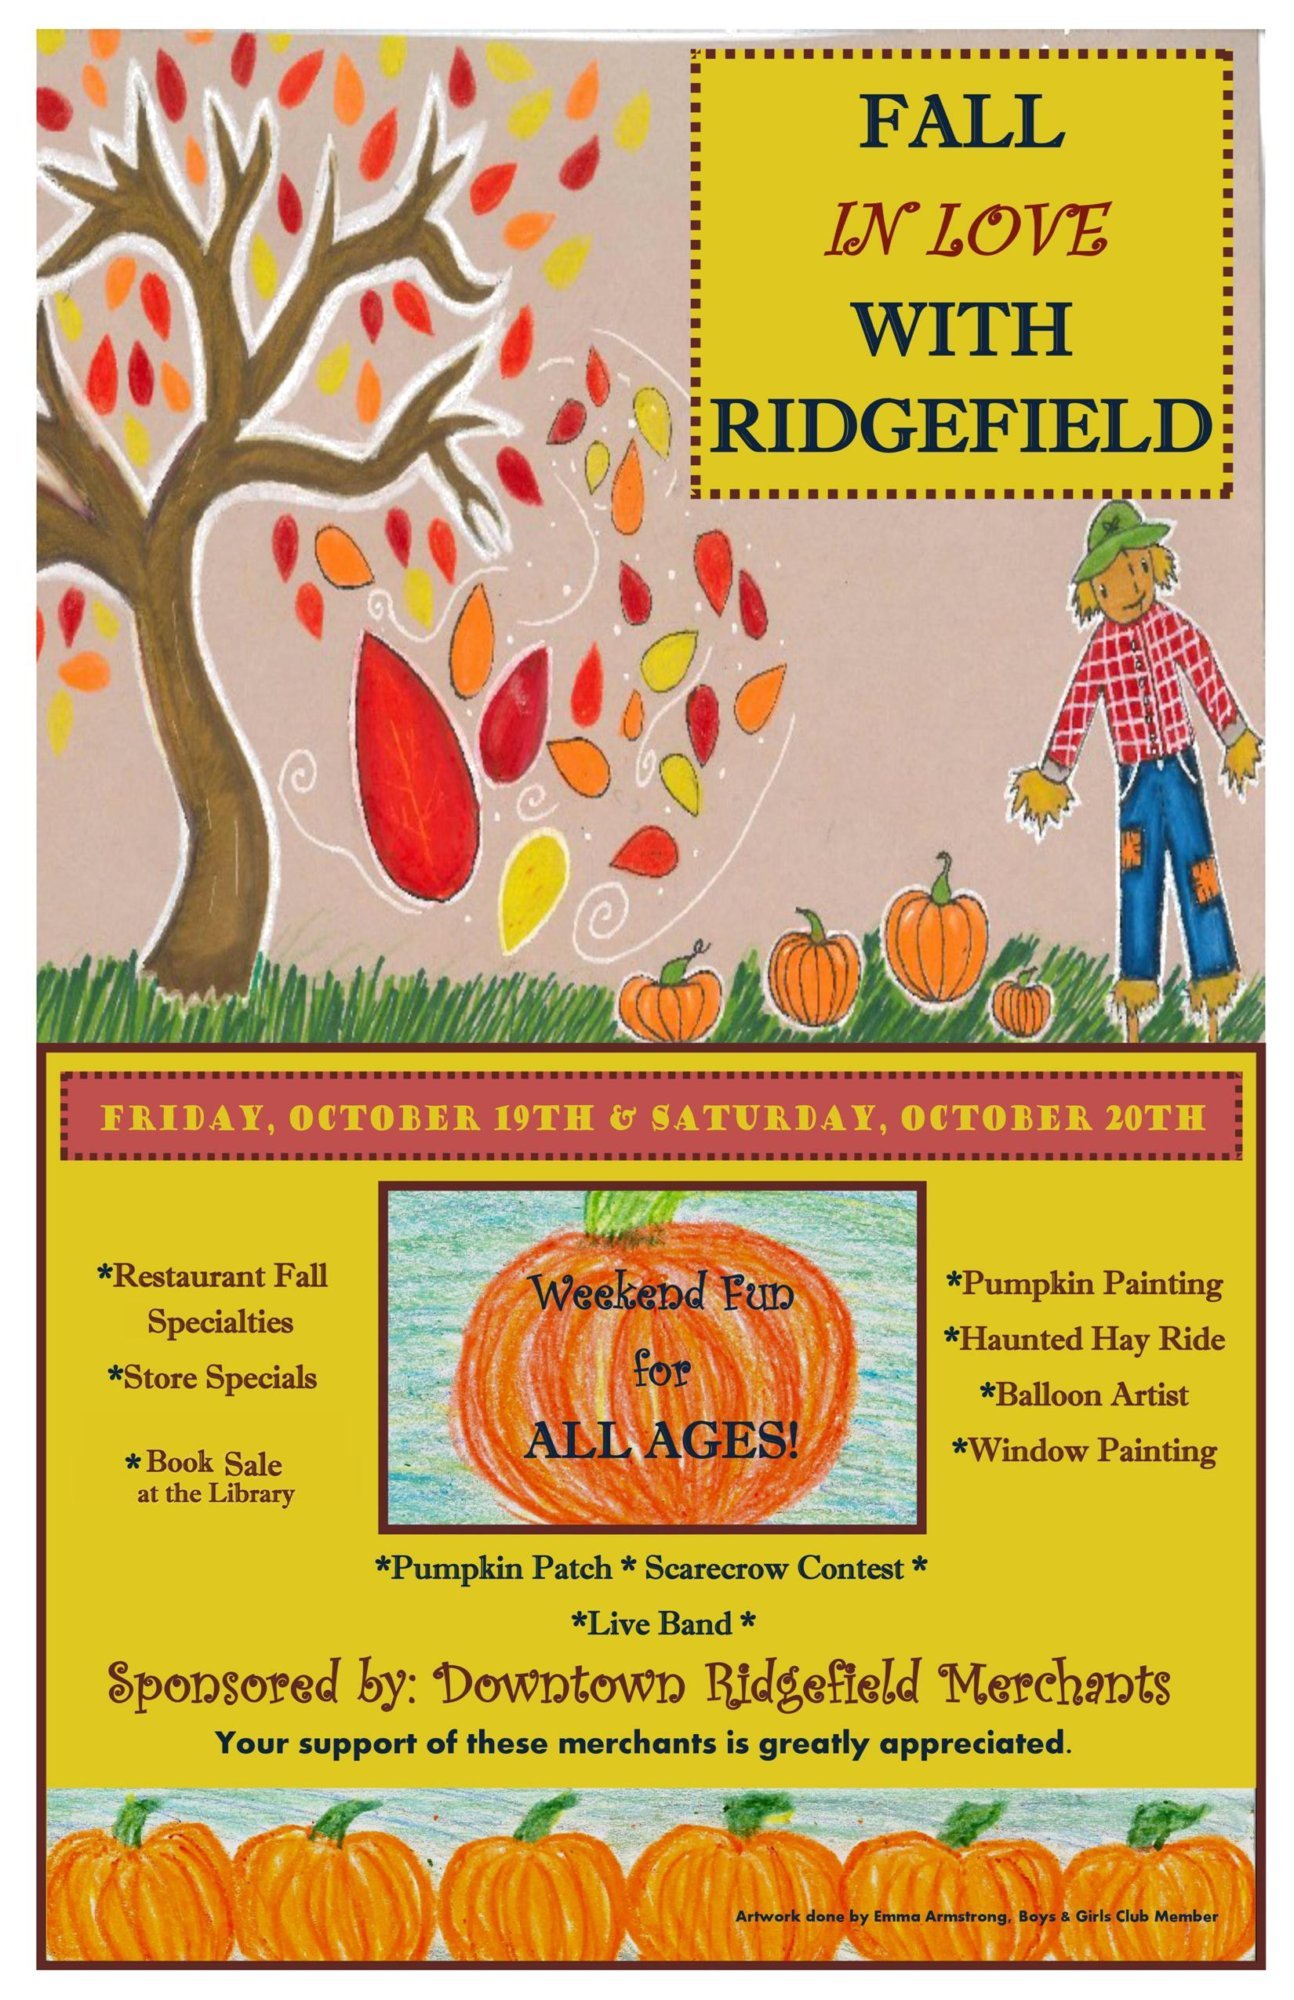 Fall in love with ridgefield 2018